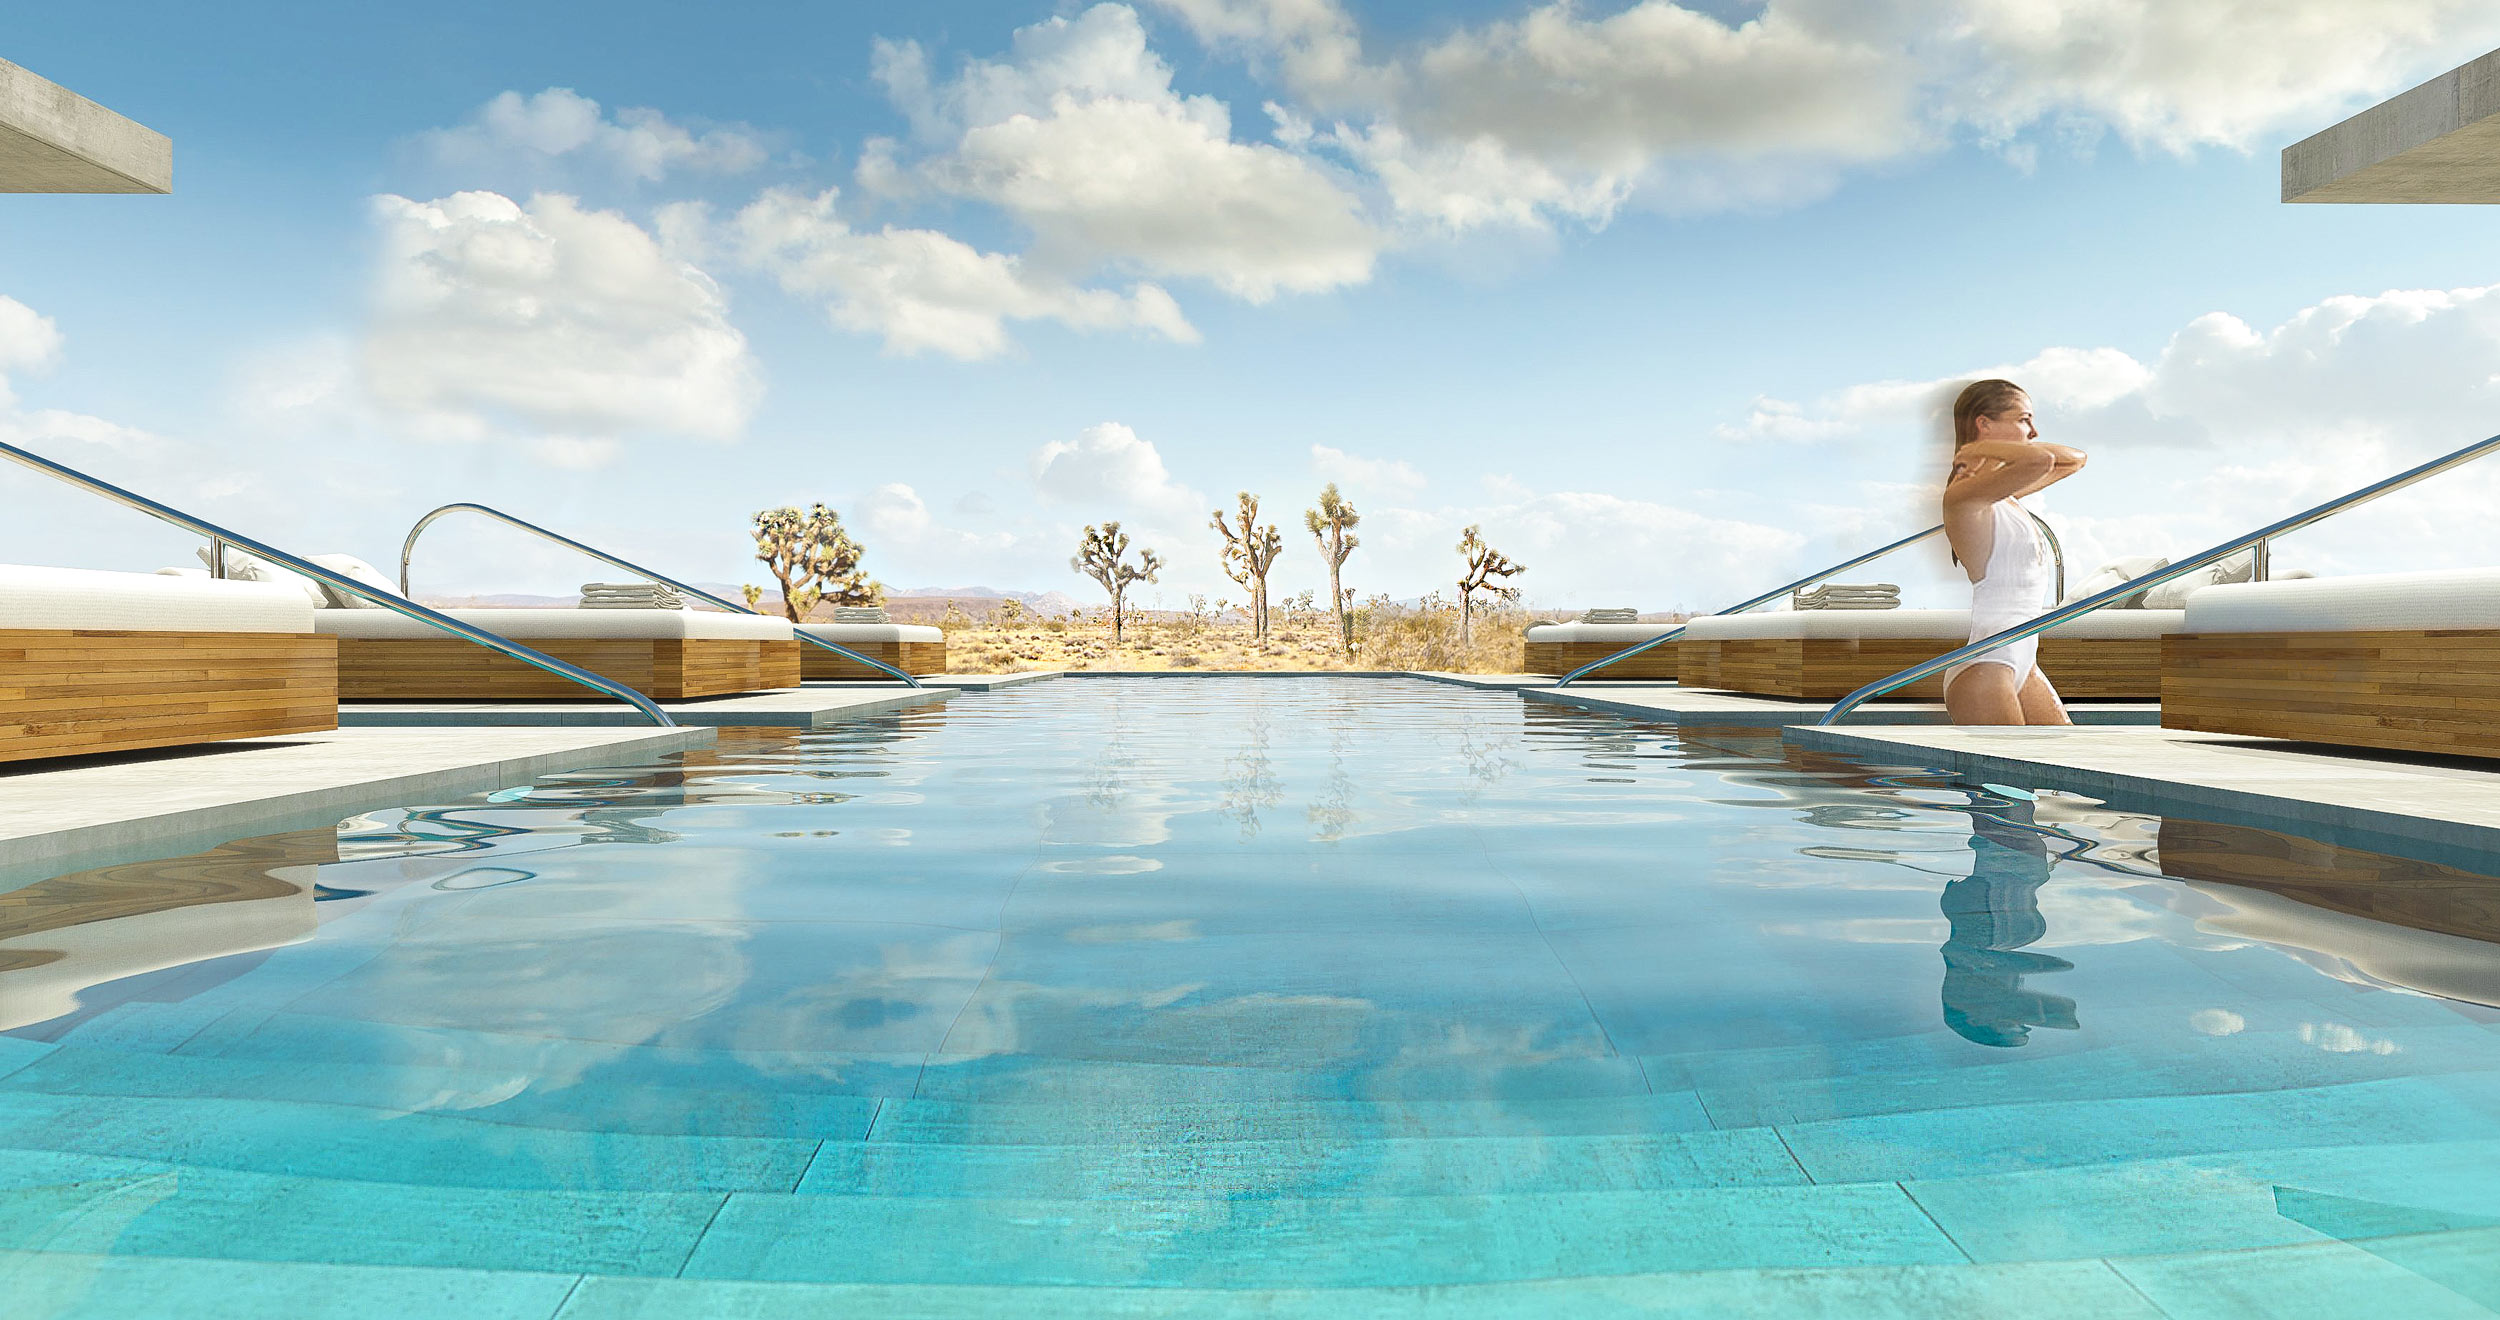 casaplutonia-resort-joshua-tree-archillusion-design-swimming-pool.jpg